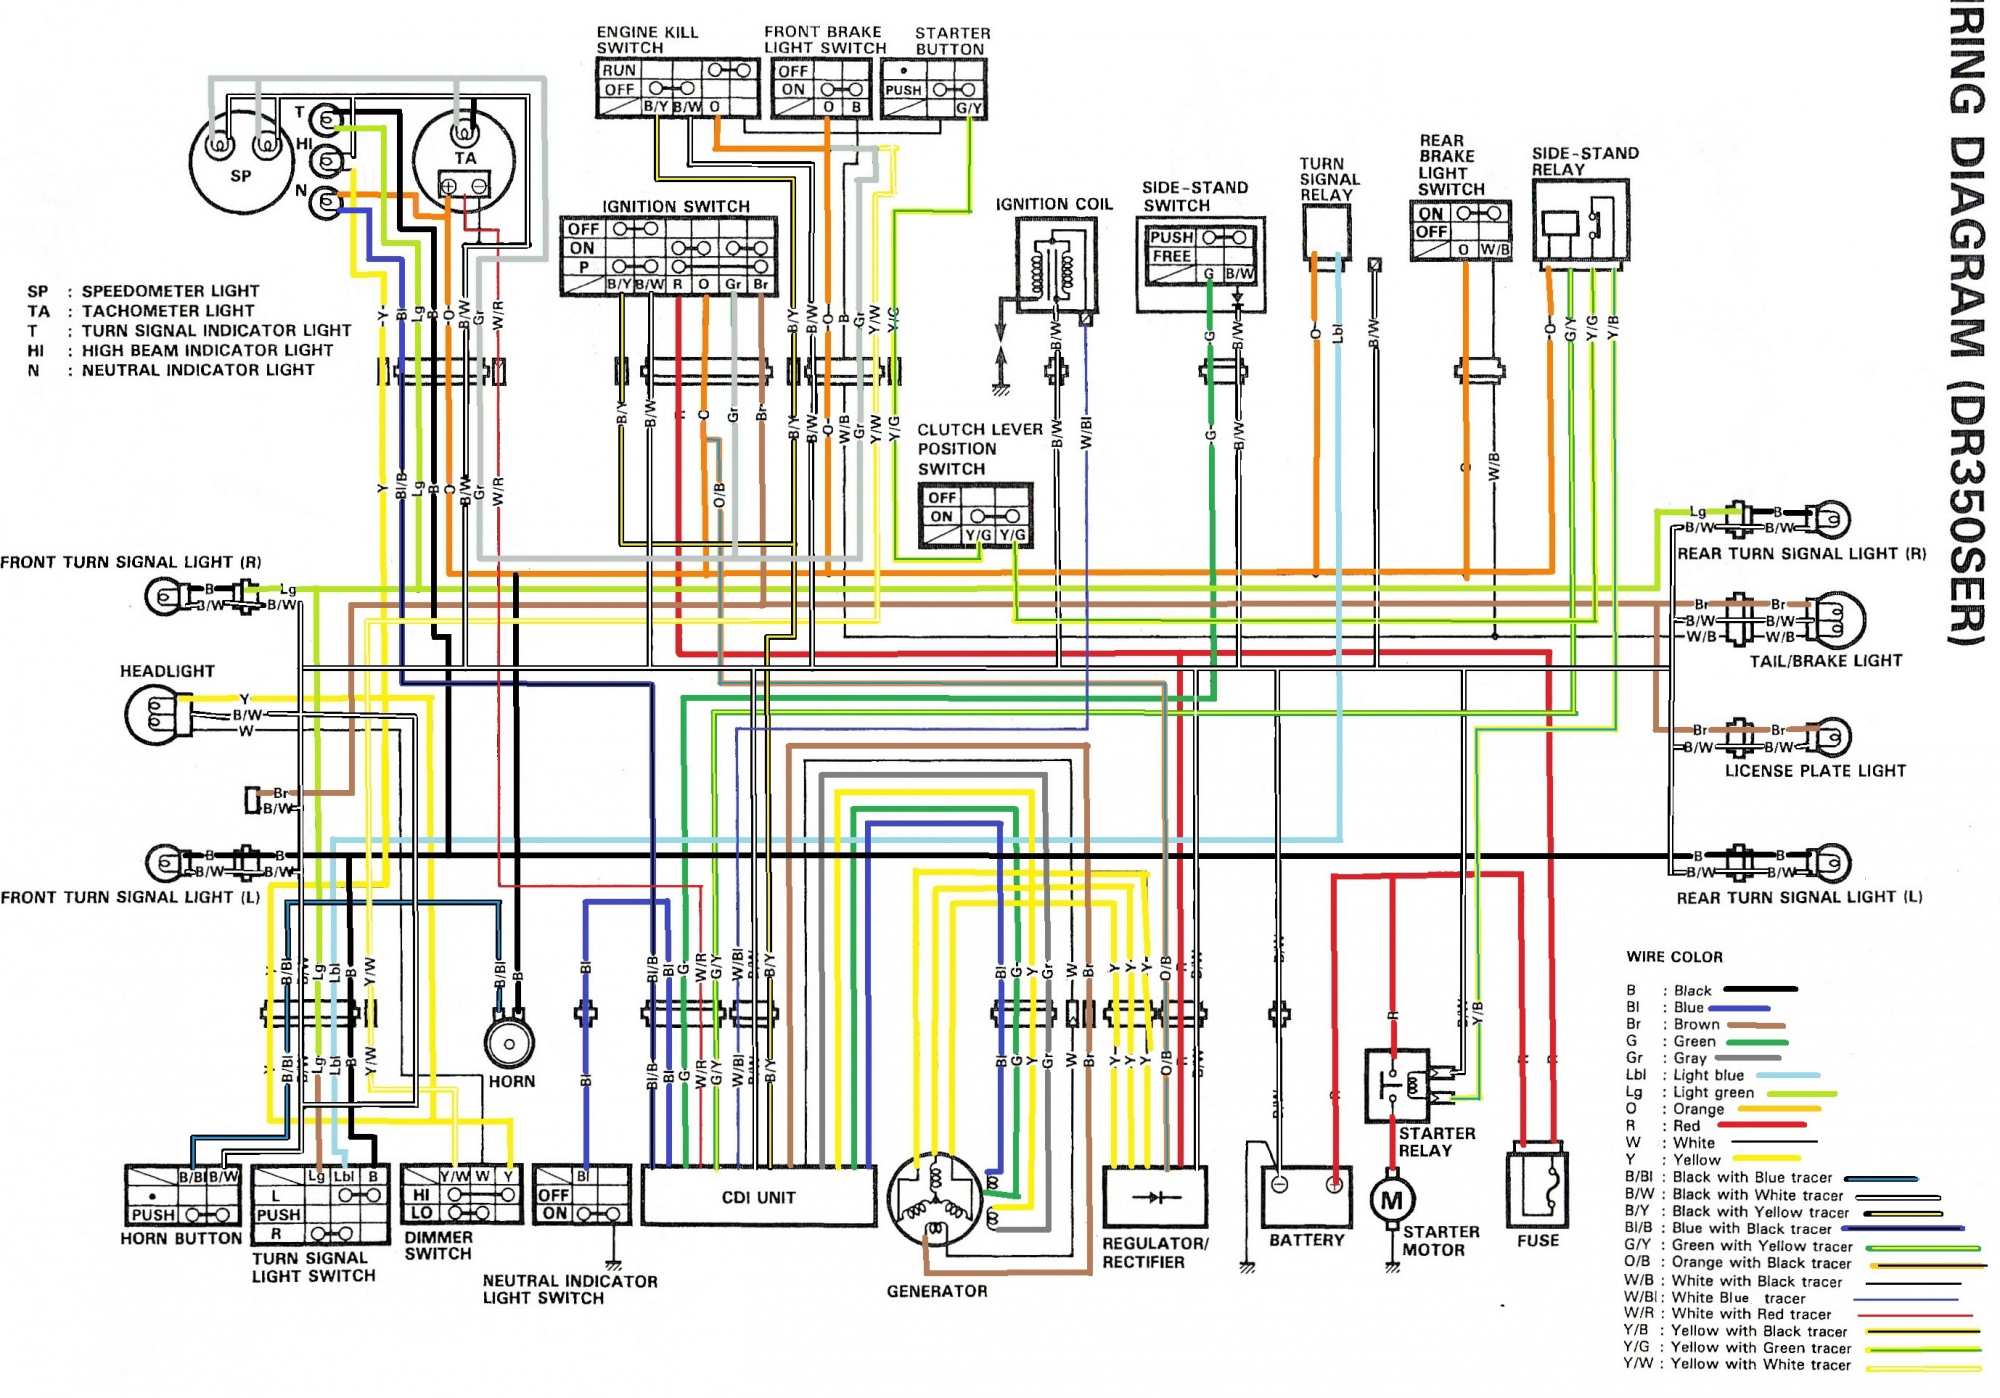 wiring diagram for the dr350 se (1994 and later models) color Suzuki GS550 Wiring-Diagram